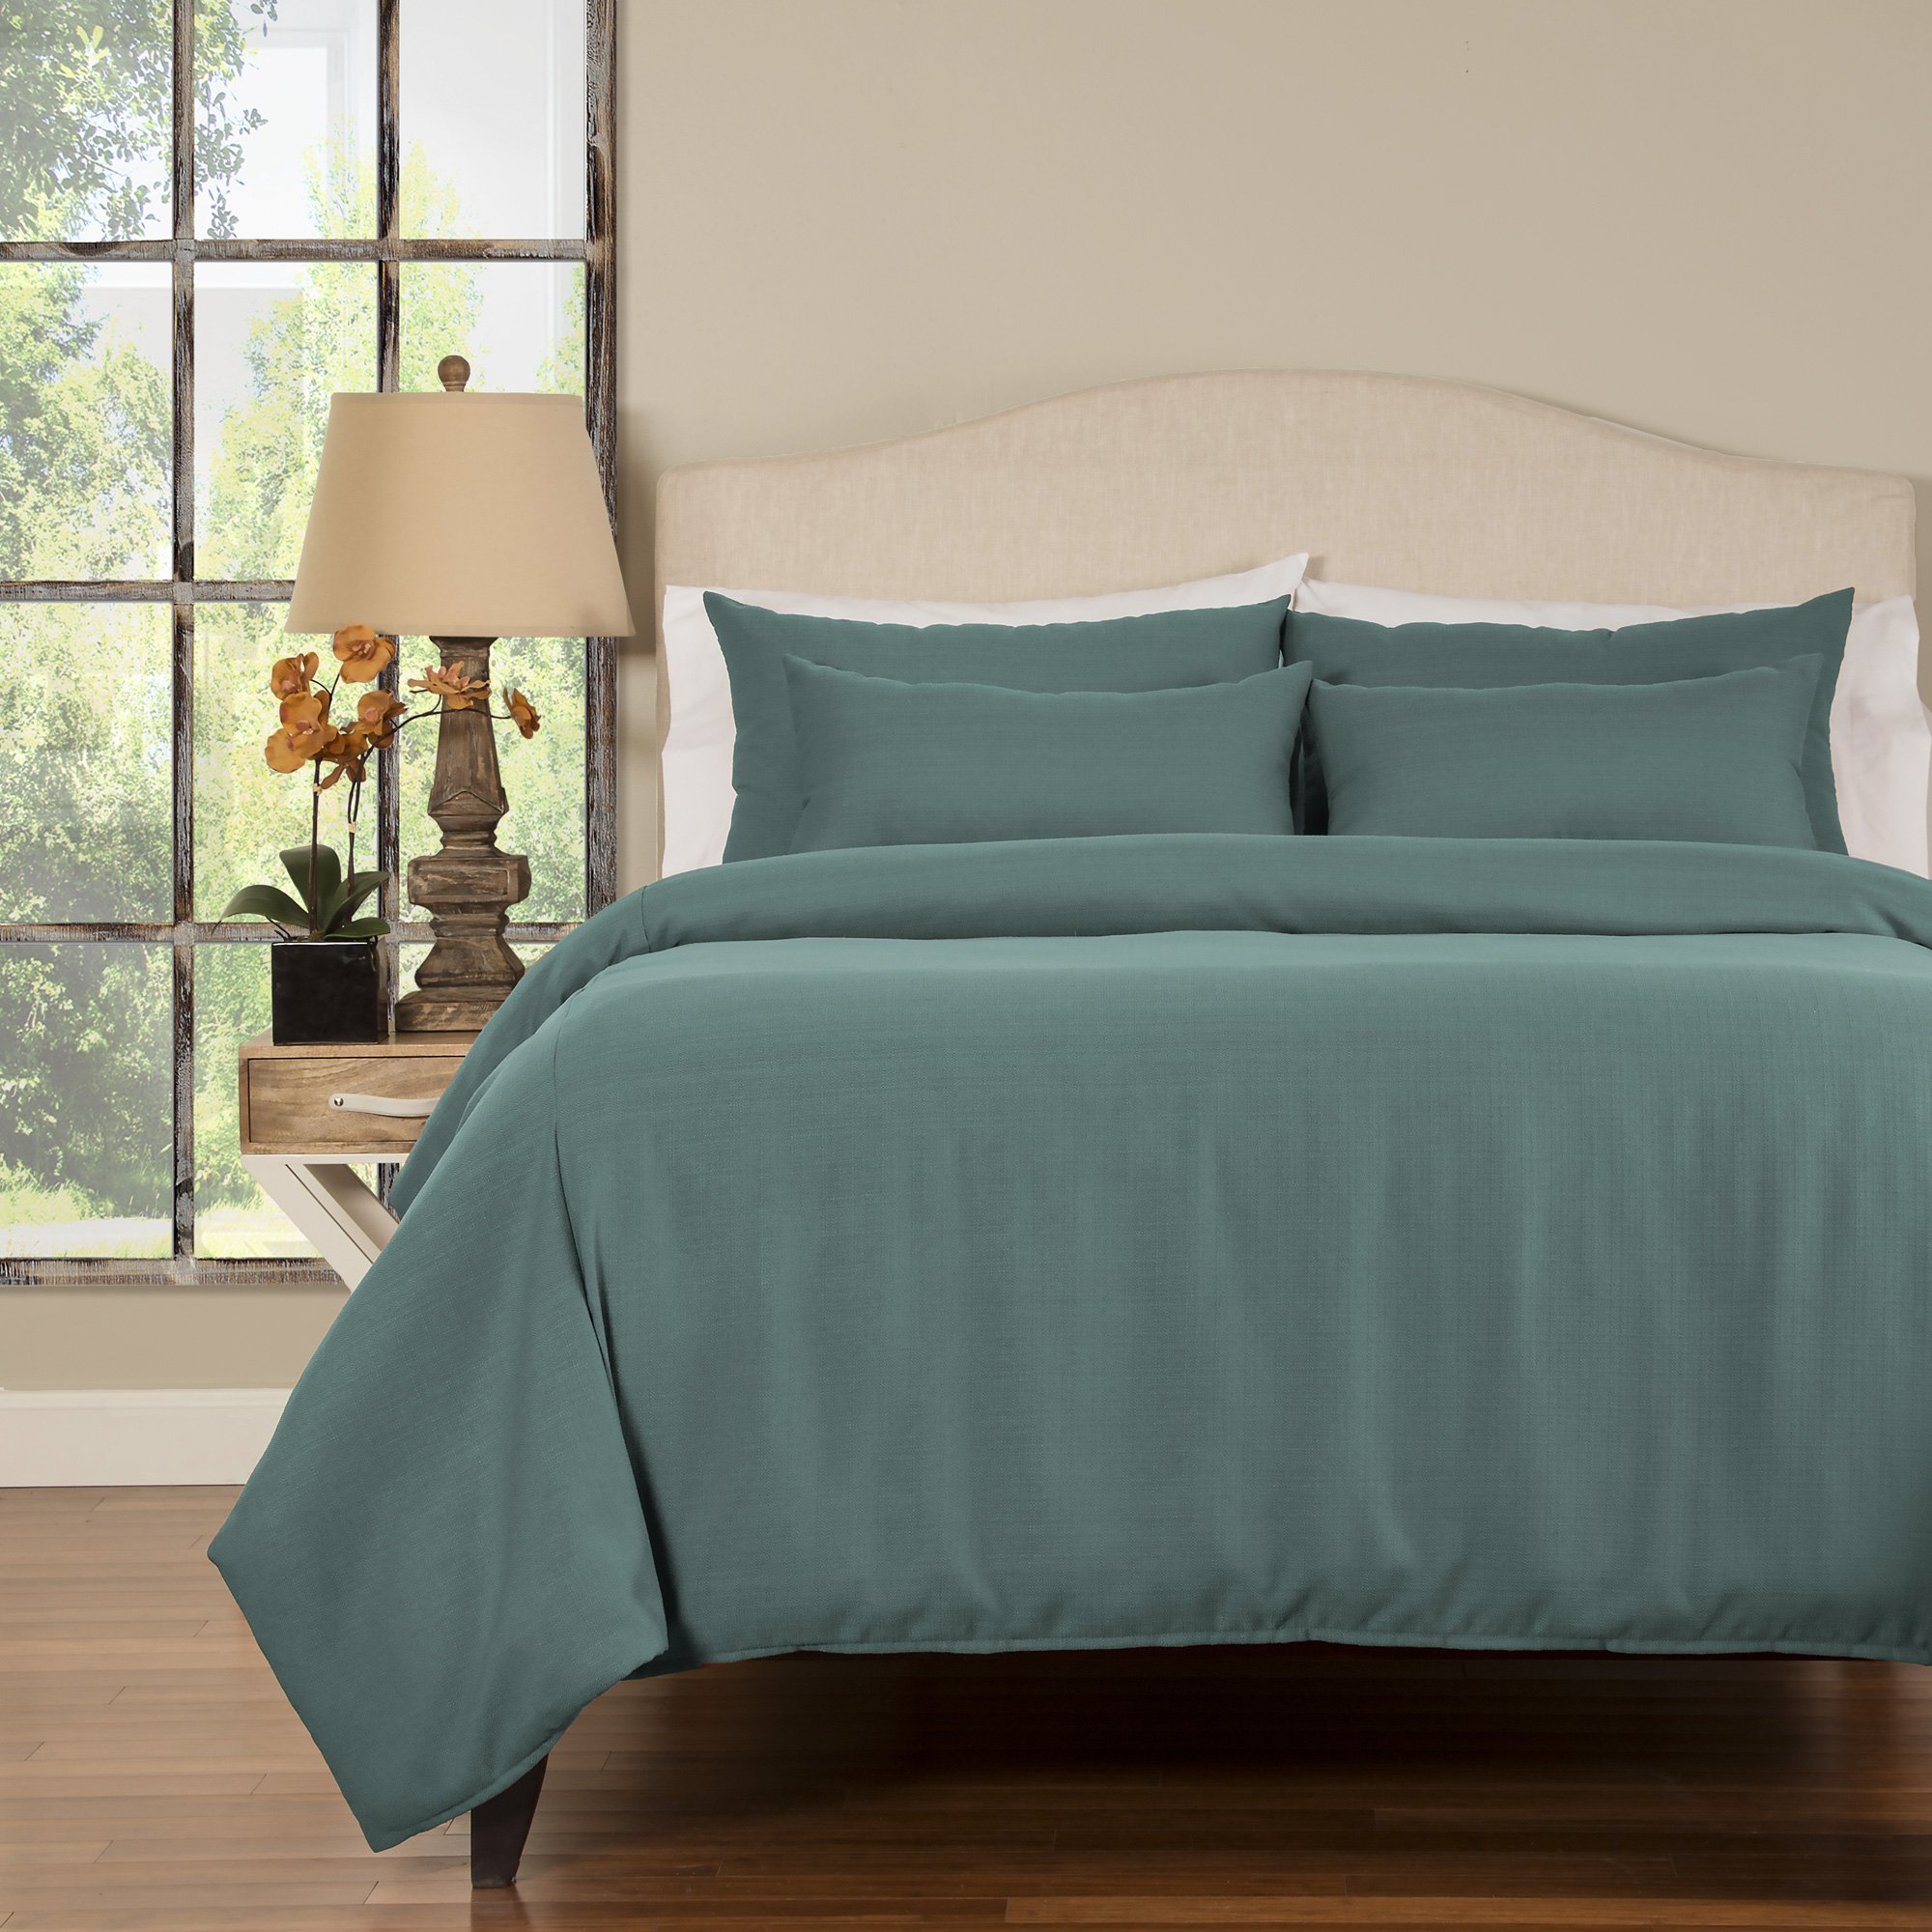 Sis Enterprises | Belfast 6 Piece Teal King Bedding Set